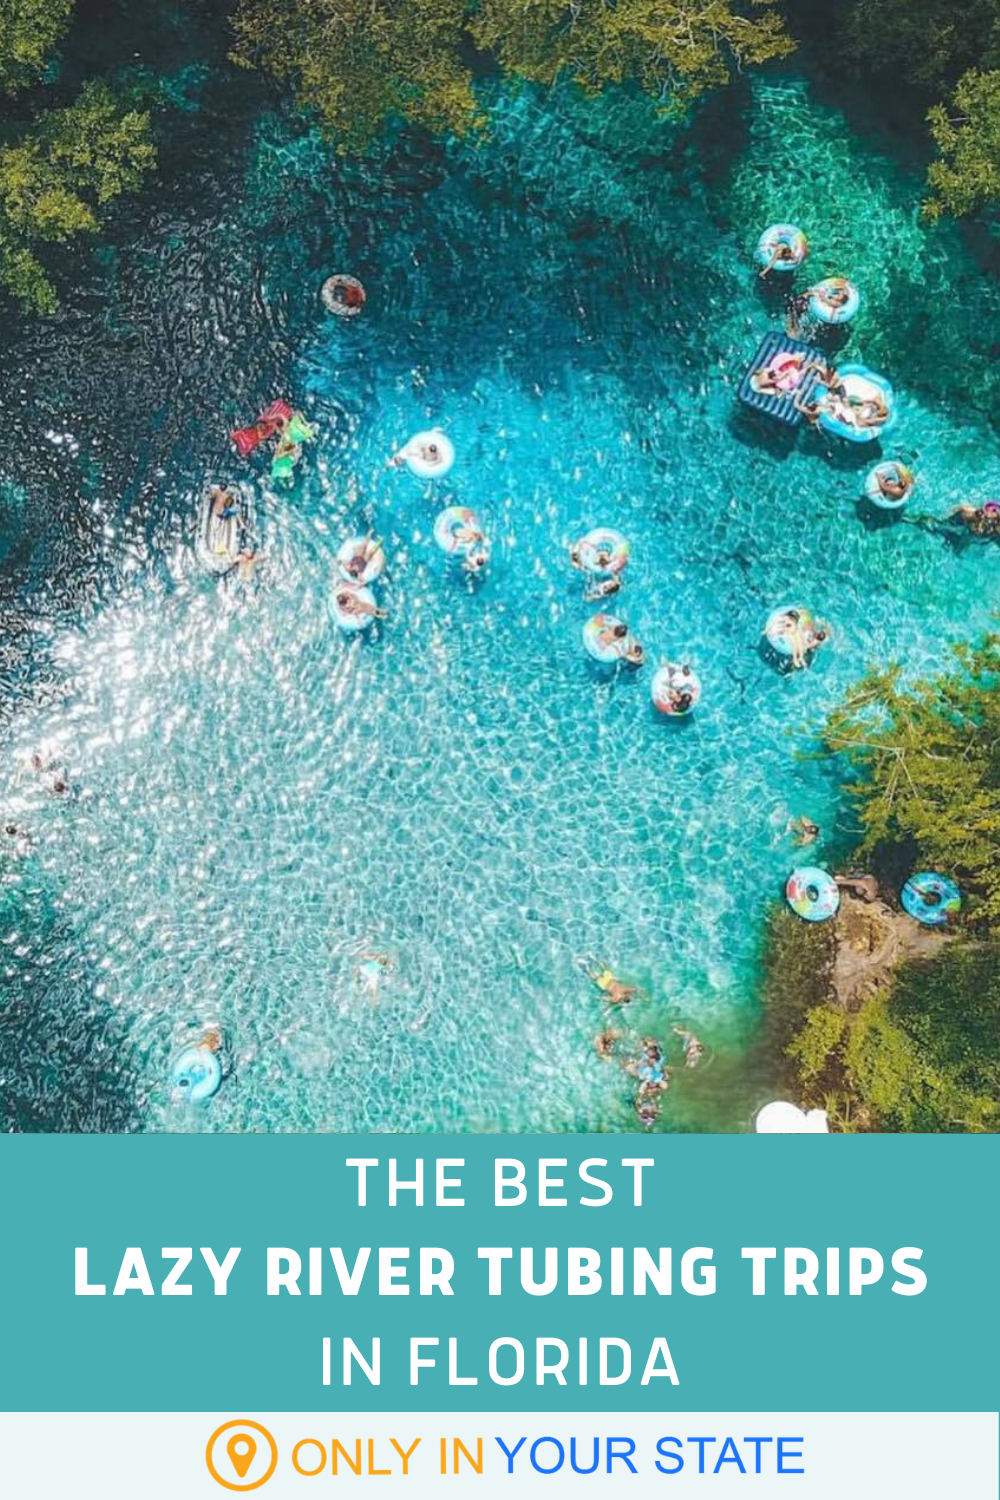 8 Lazy River Summer Tubing Trips In Florida To Start Planning Now Trip Florida Travel Orlando Travel